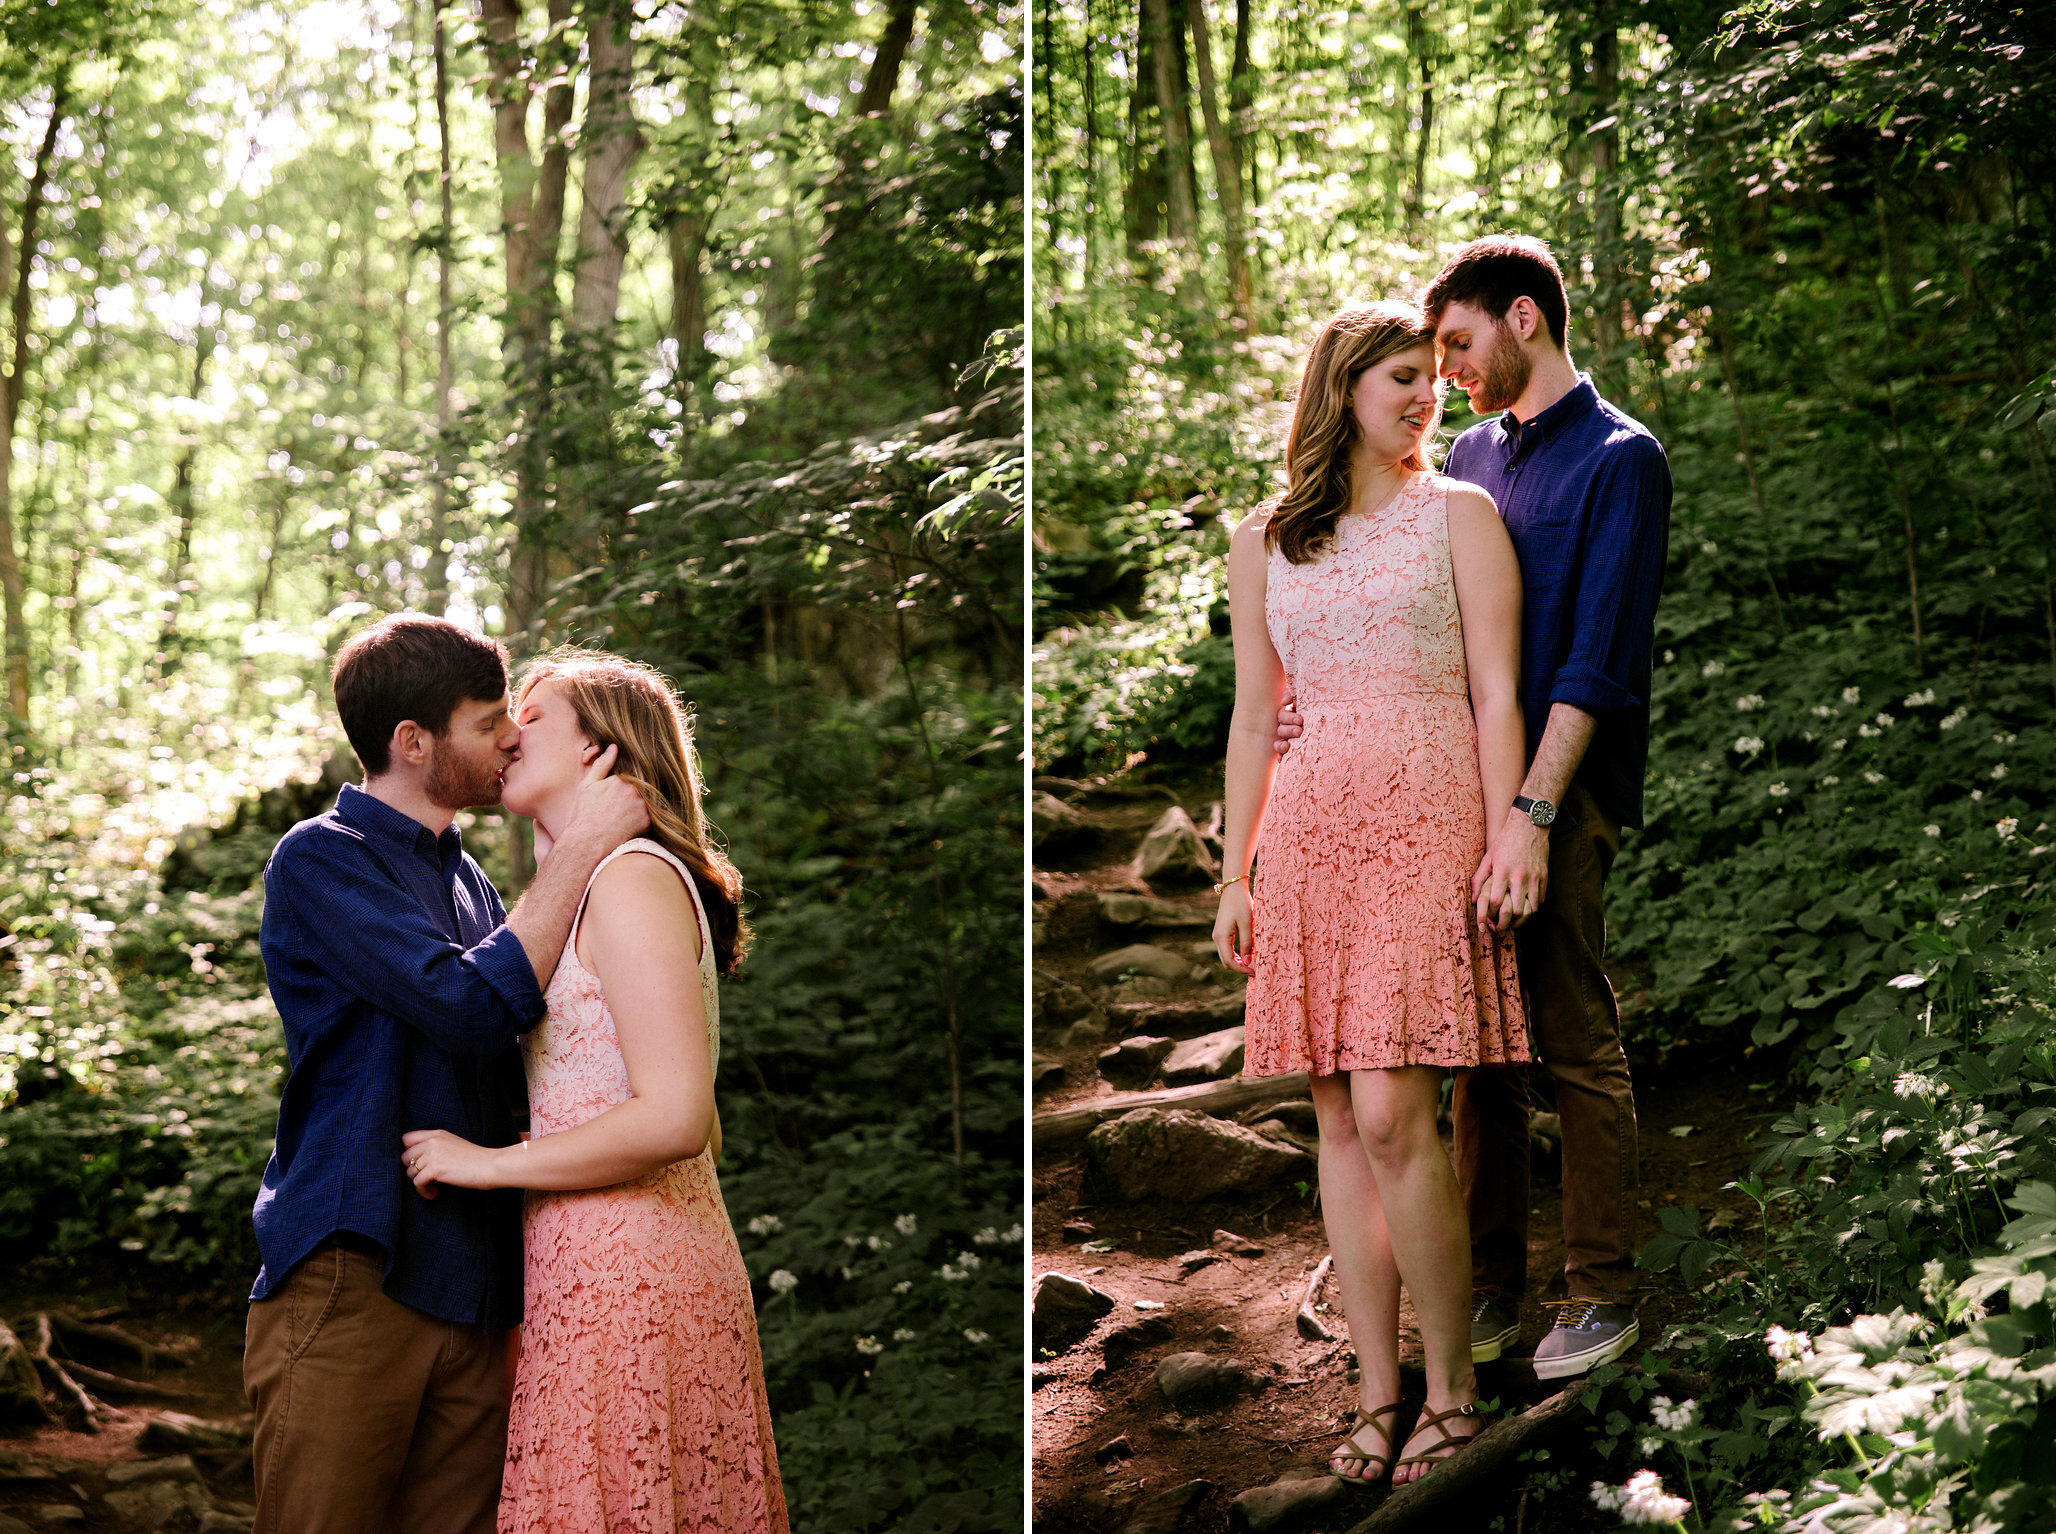 Chelsea+James- Appalachian Trail Engagement Session- Forest Sunlight- New Jersey-Olivia Christina Photo.jpg